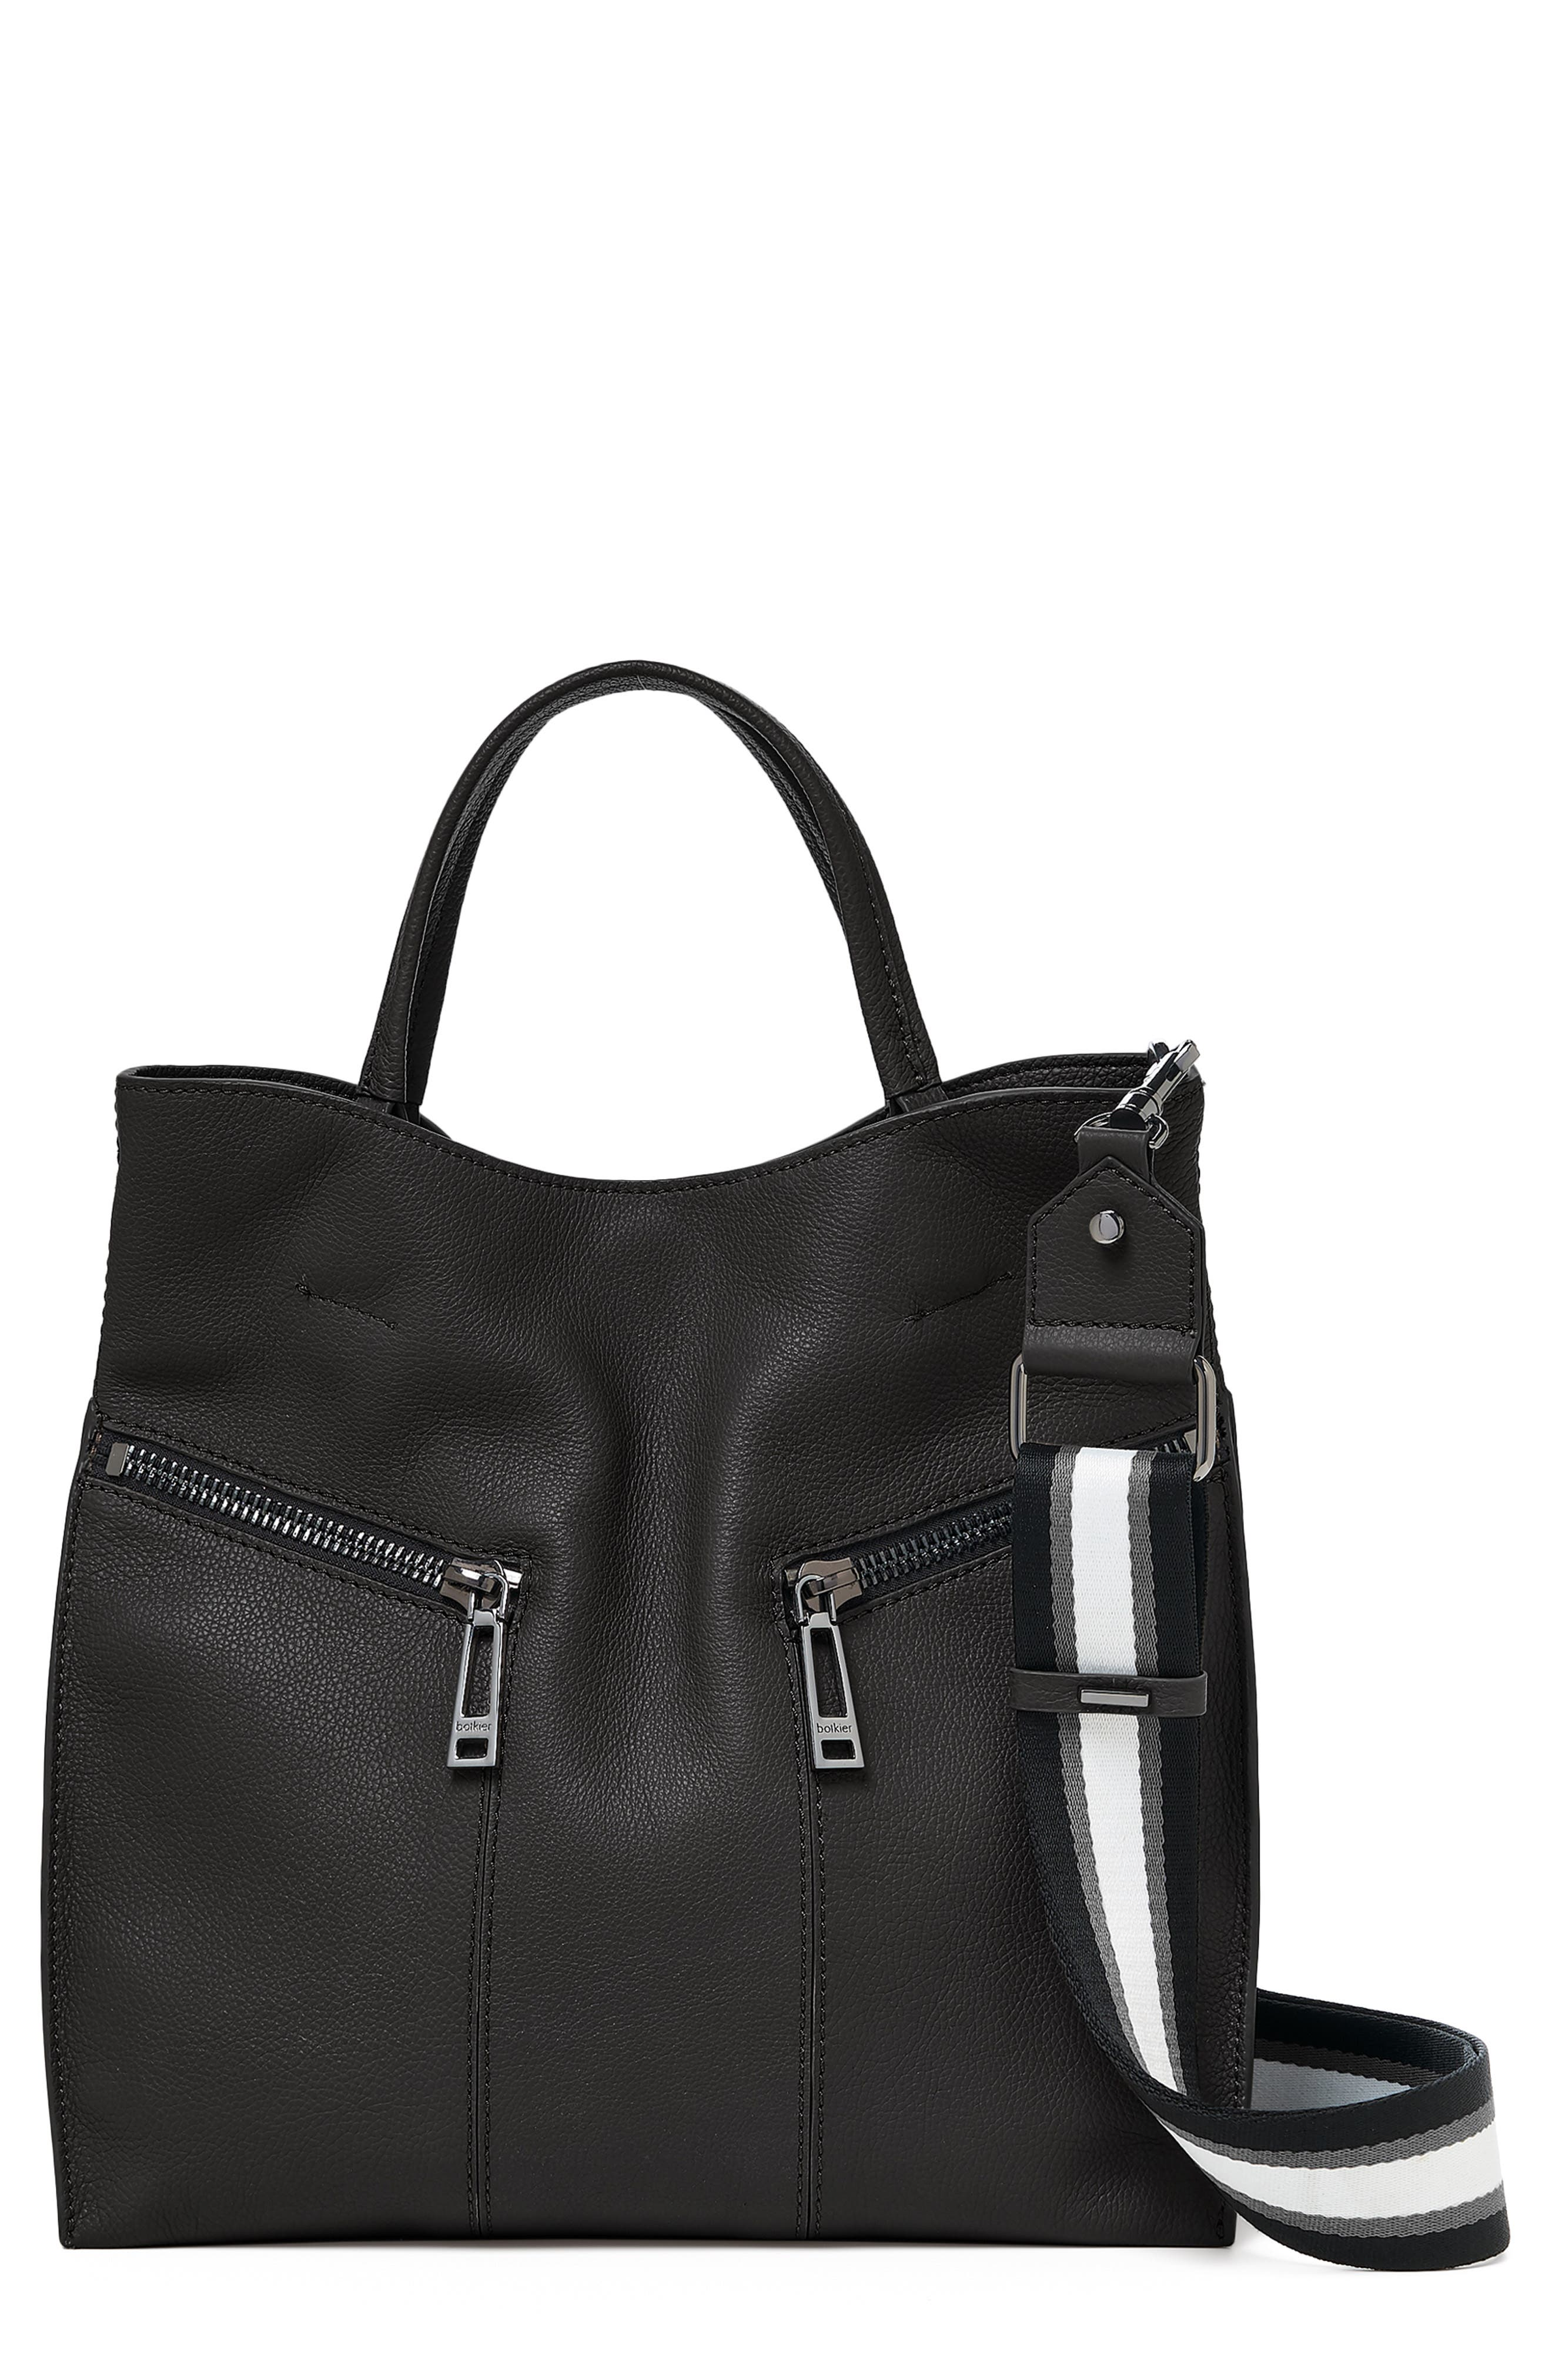 BOTKIER, Trigger Pebbled Leather Satchel, Main thumbnail 1, color, BLACK